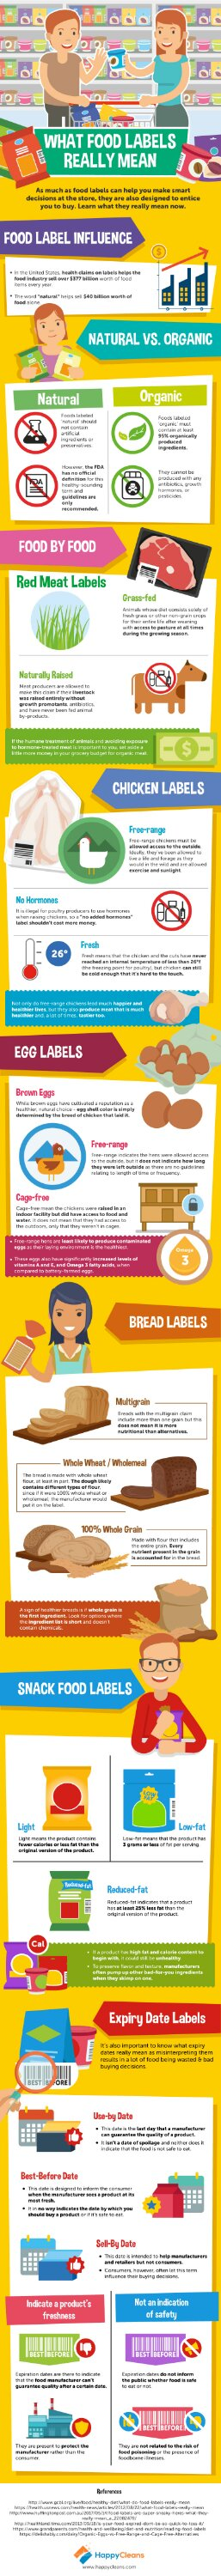 What food labels really mean? (Infographic)